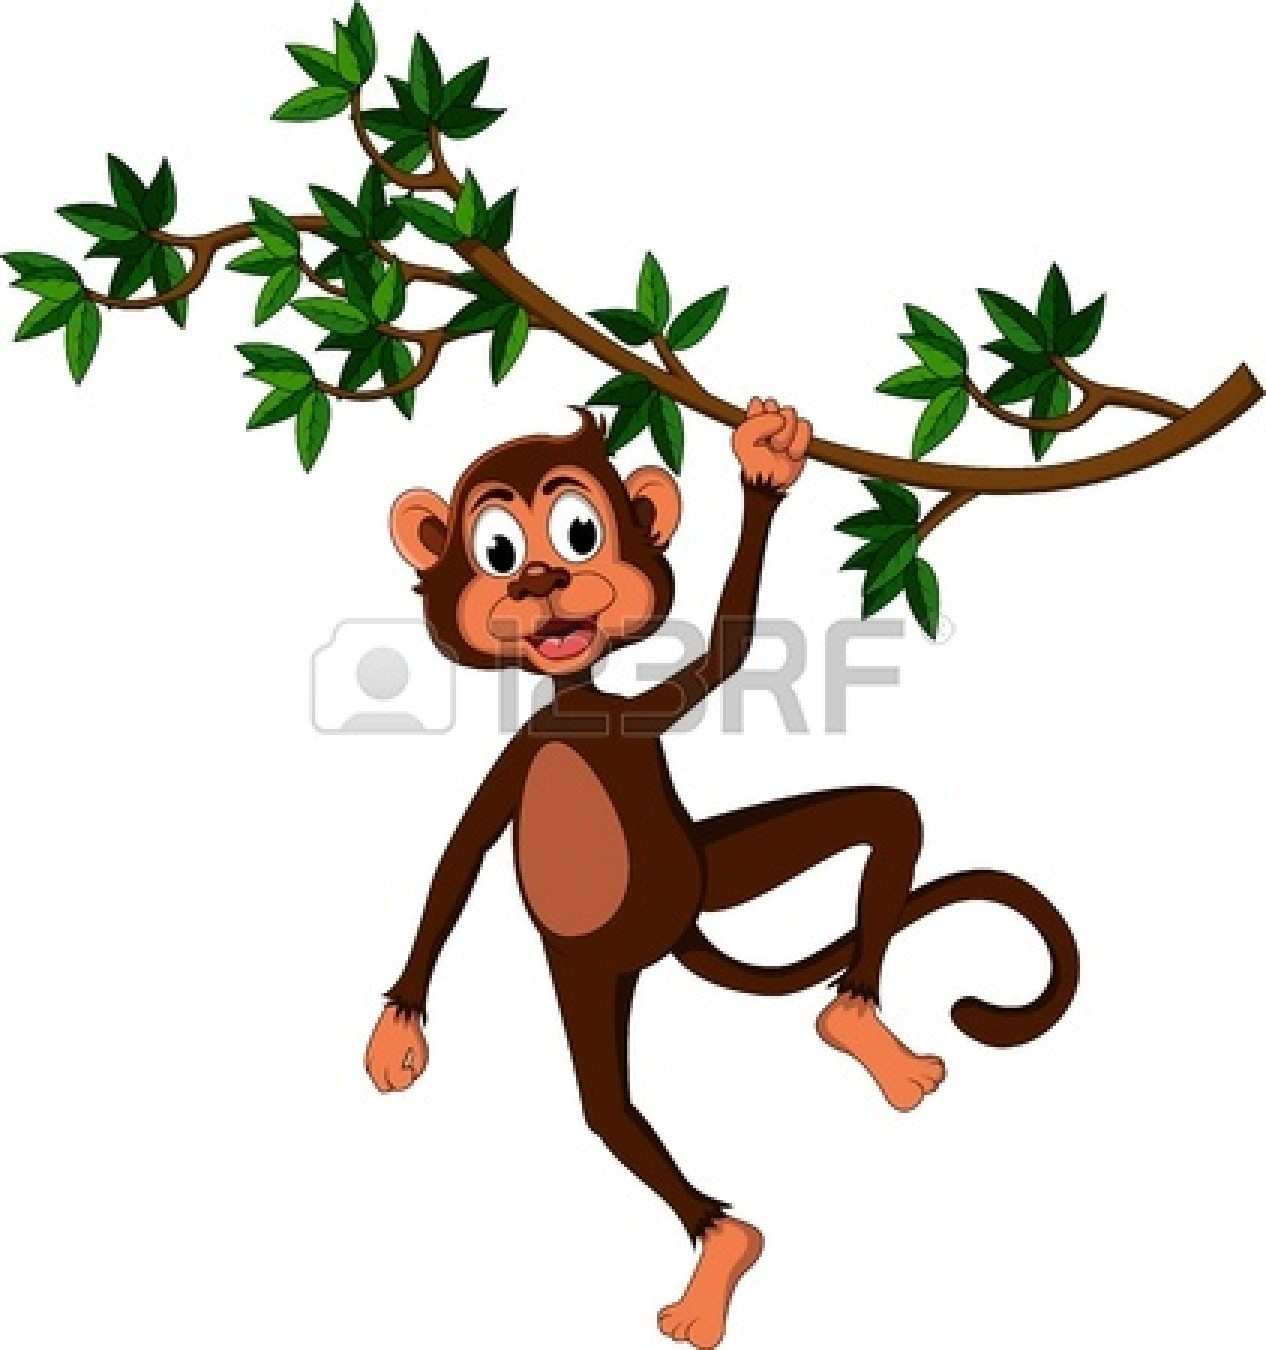 clipart monkey hanging from tree - photo #36